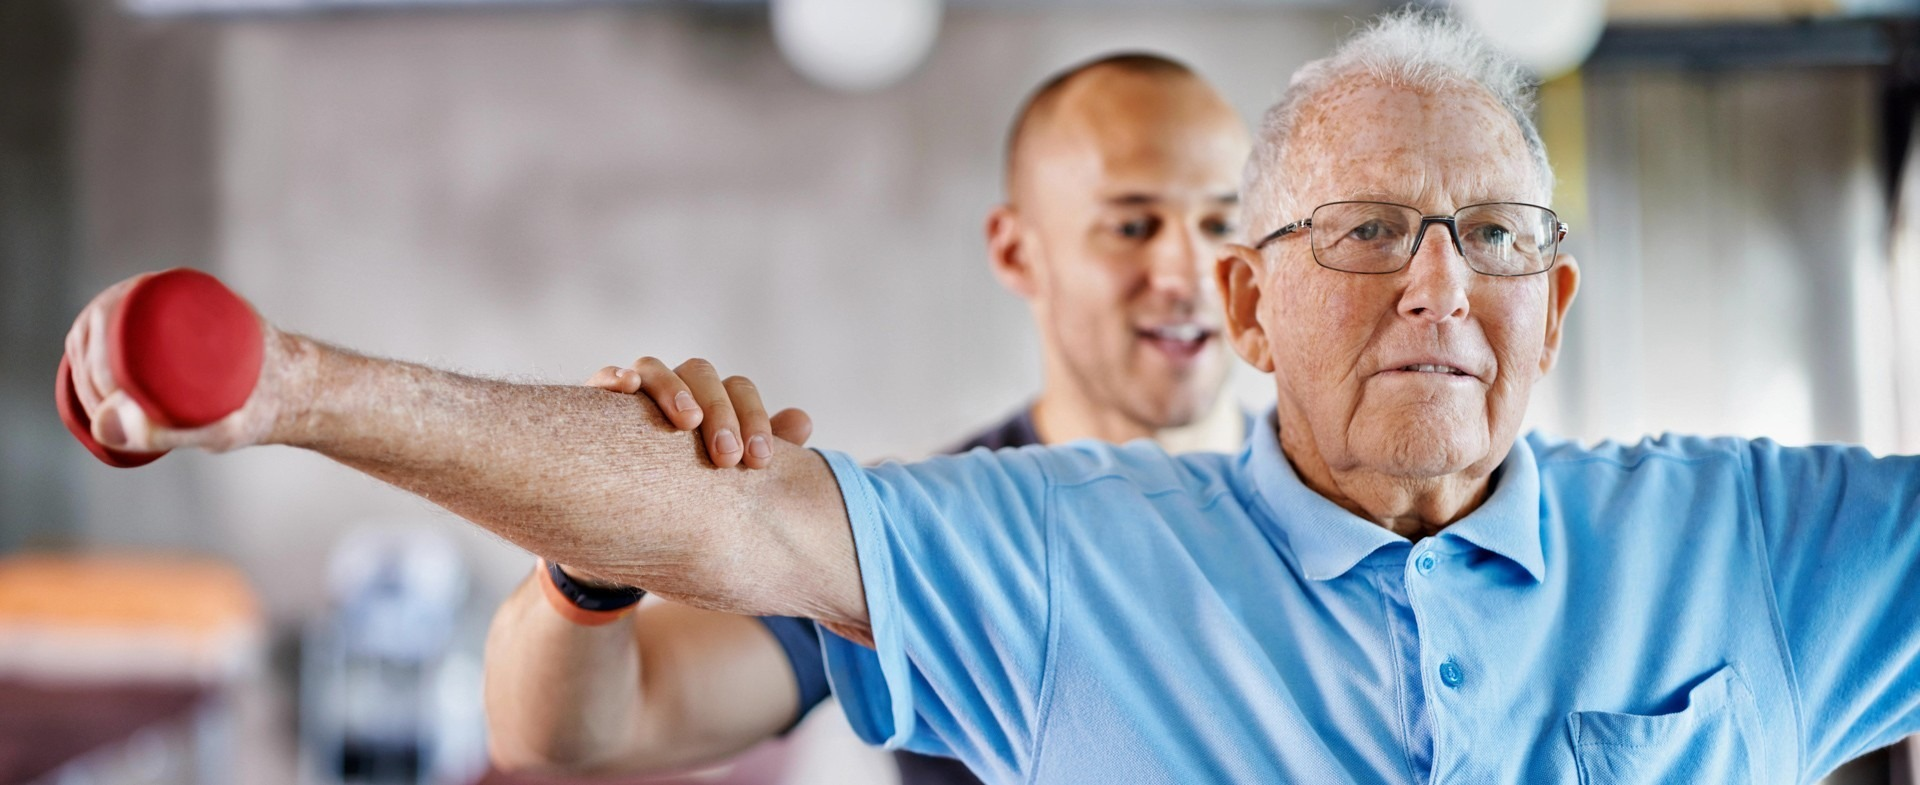 Physical therapist helping elderly man with shoulder presses